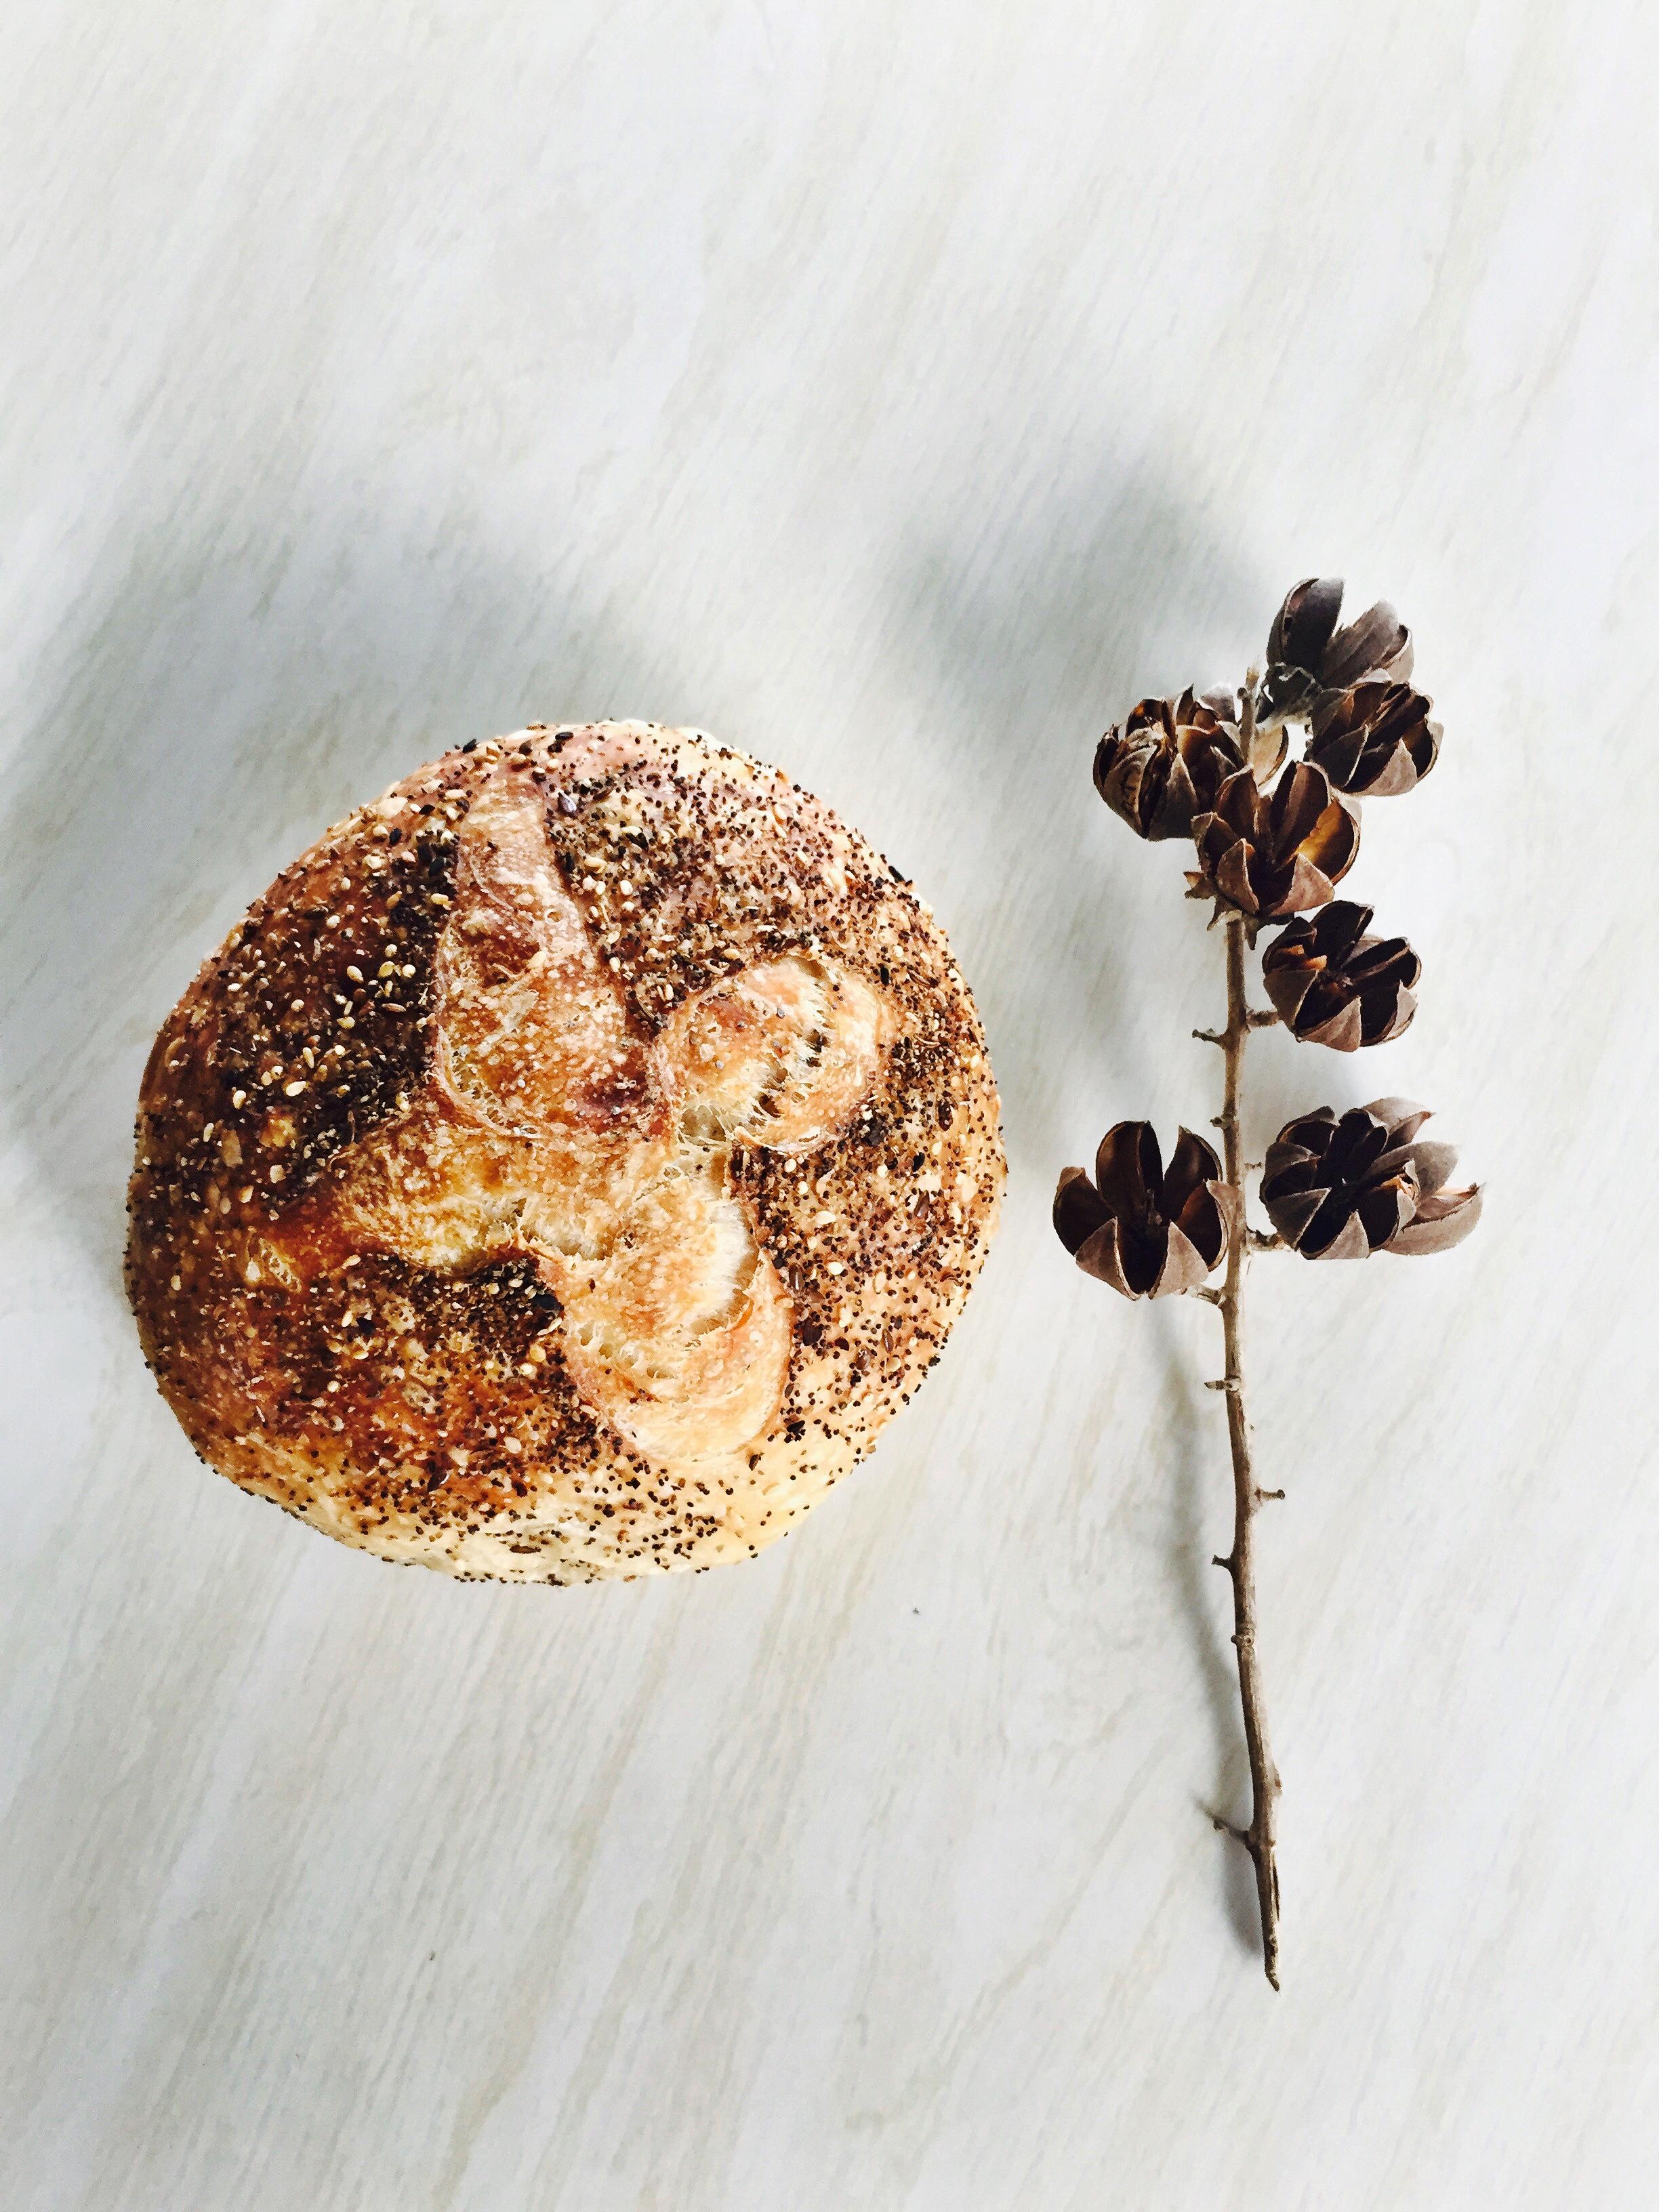 Seed bread recipe from the Full Moon Baking Club, just in time for Spring gatherings.